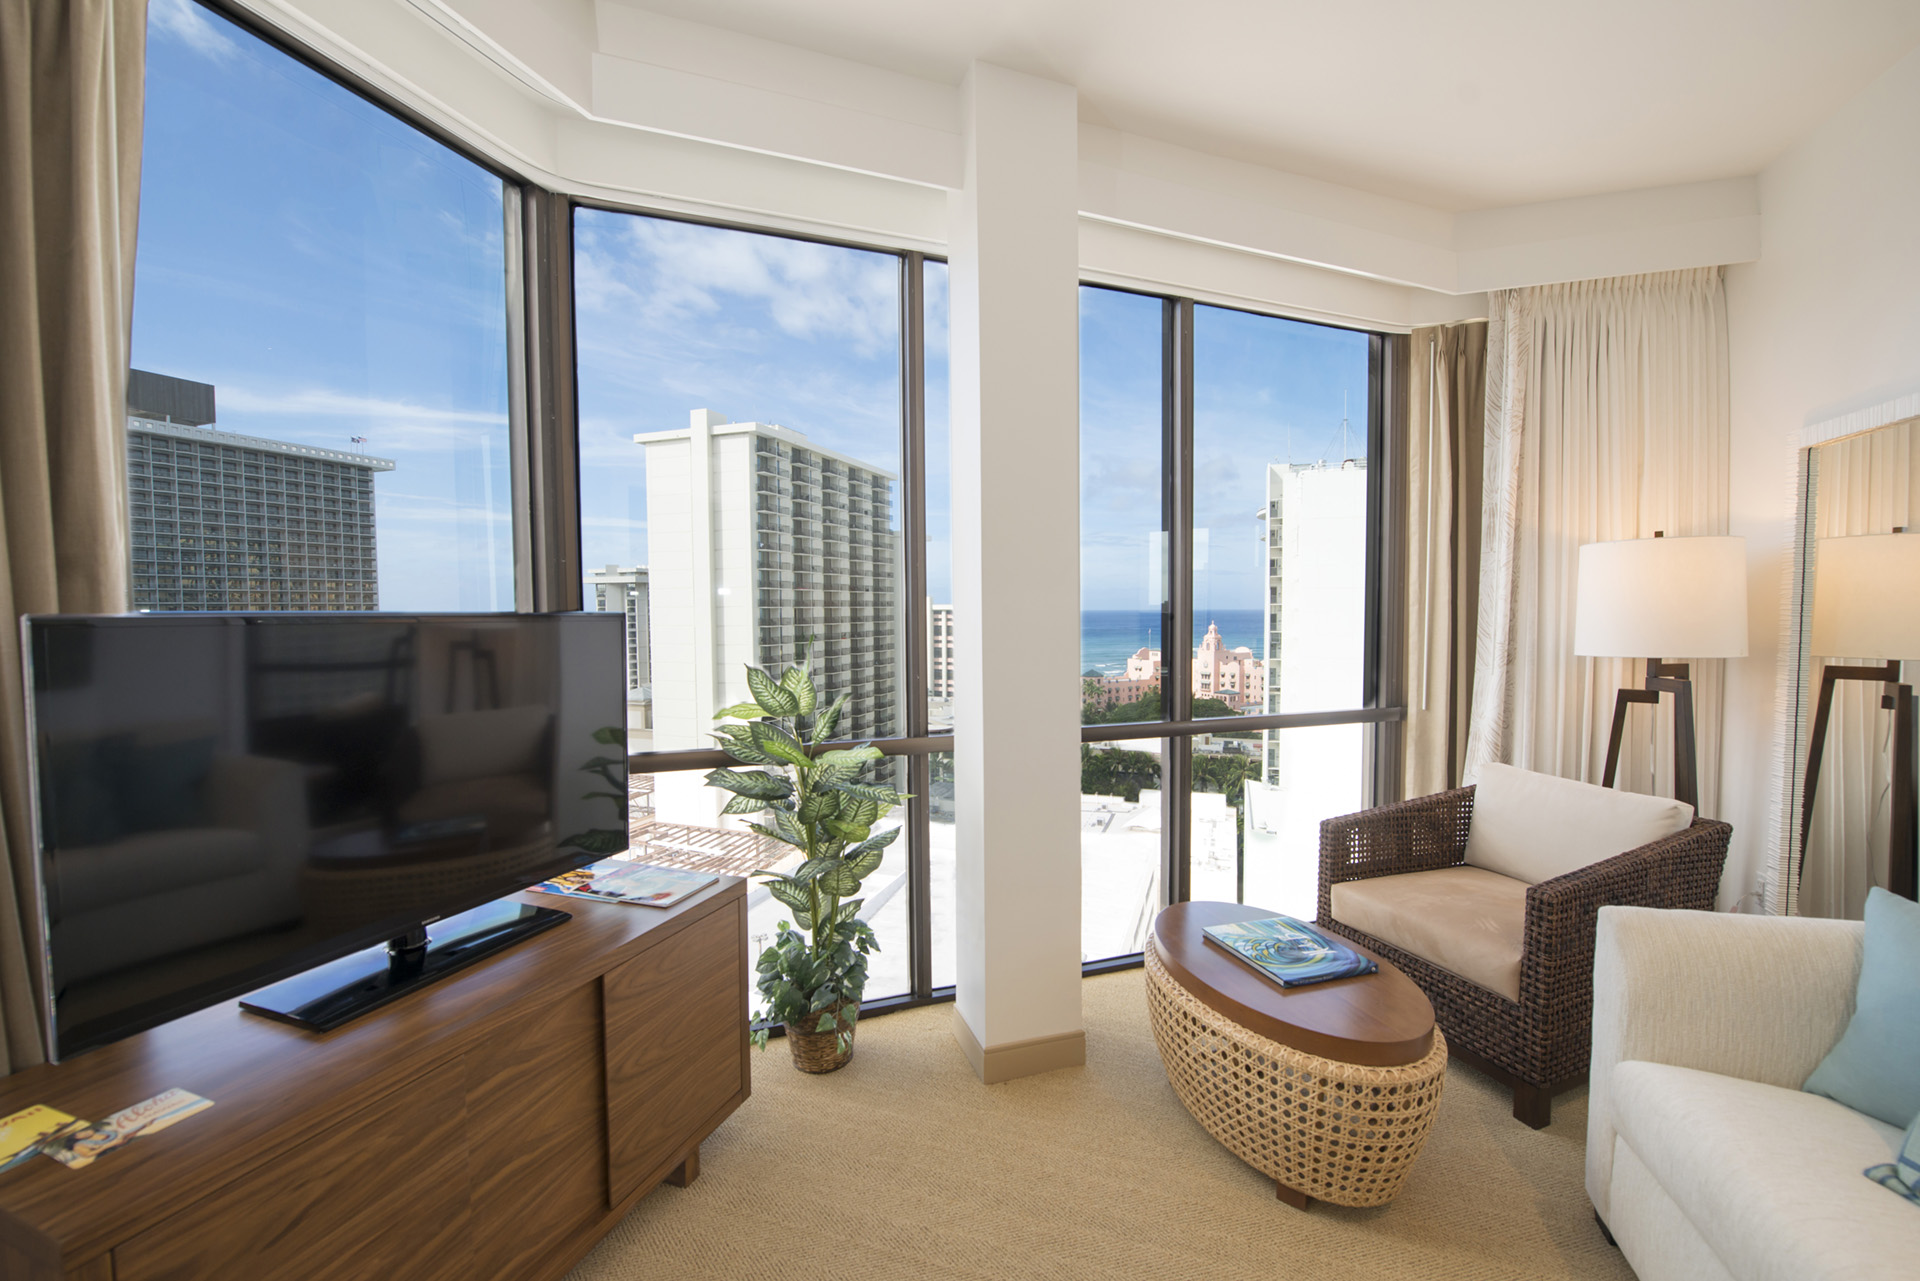 New Hyatt Centric Waikiki Beach Brings Contemporary Hawaiian Design To Oahus Kuhio Corridor This December